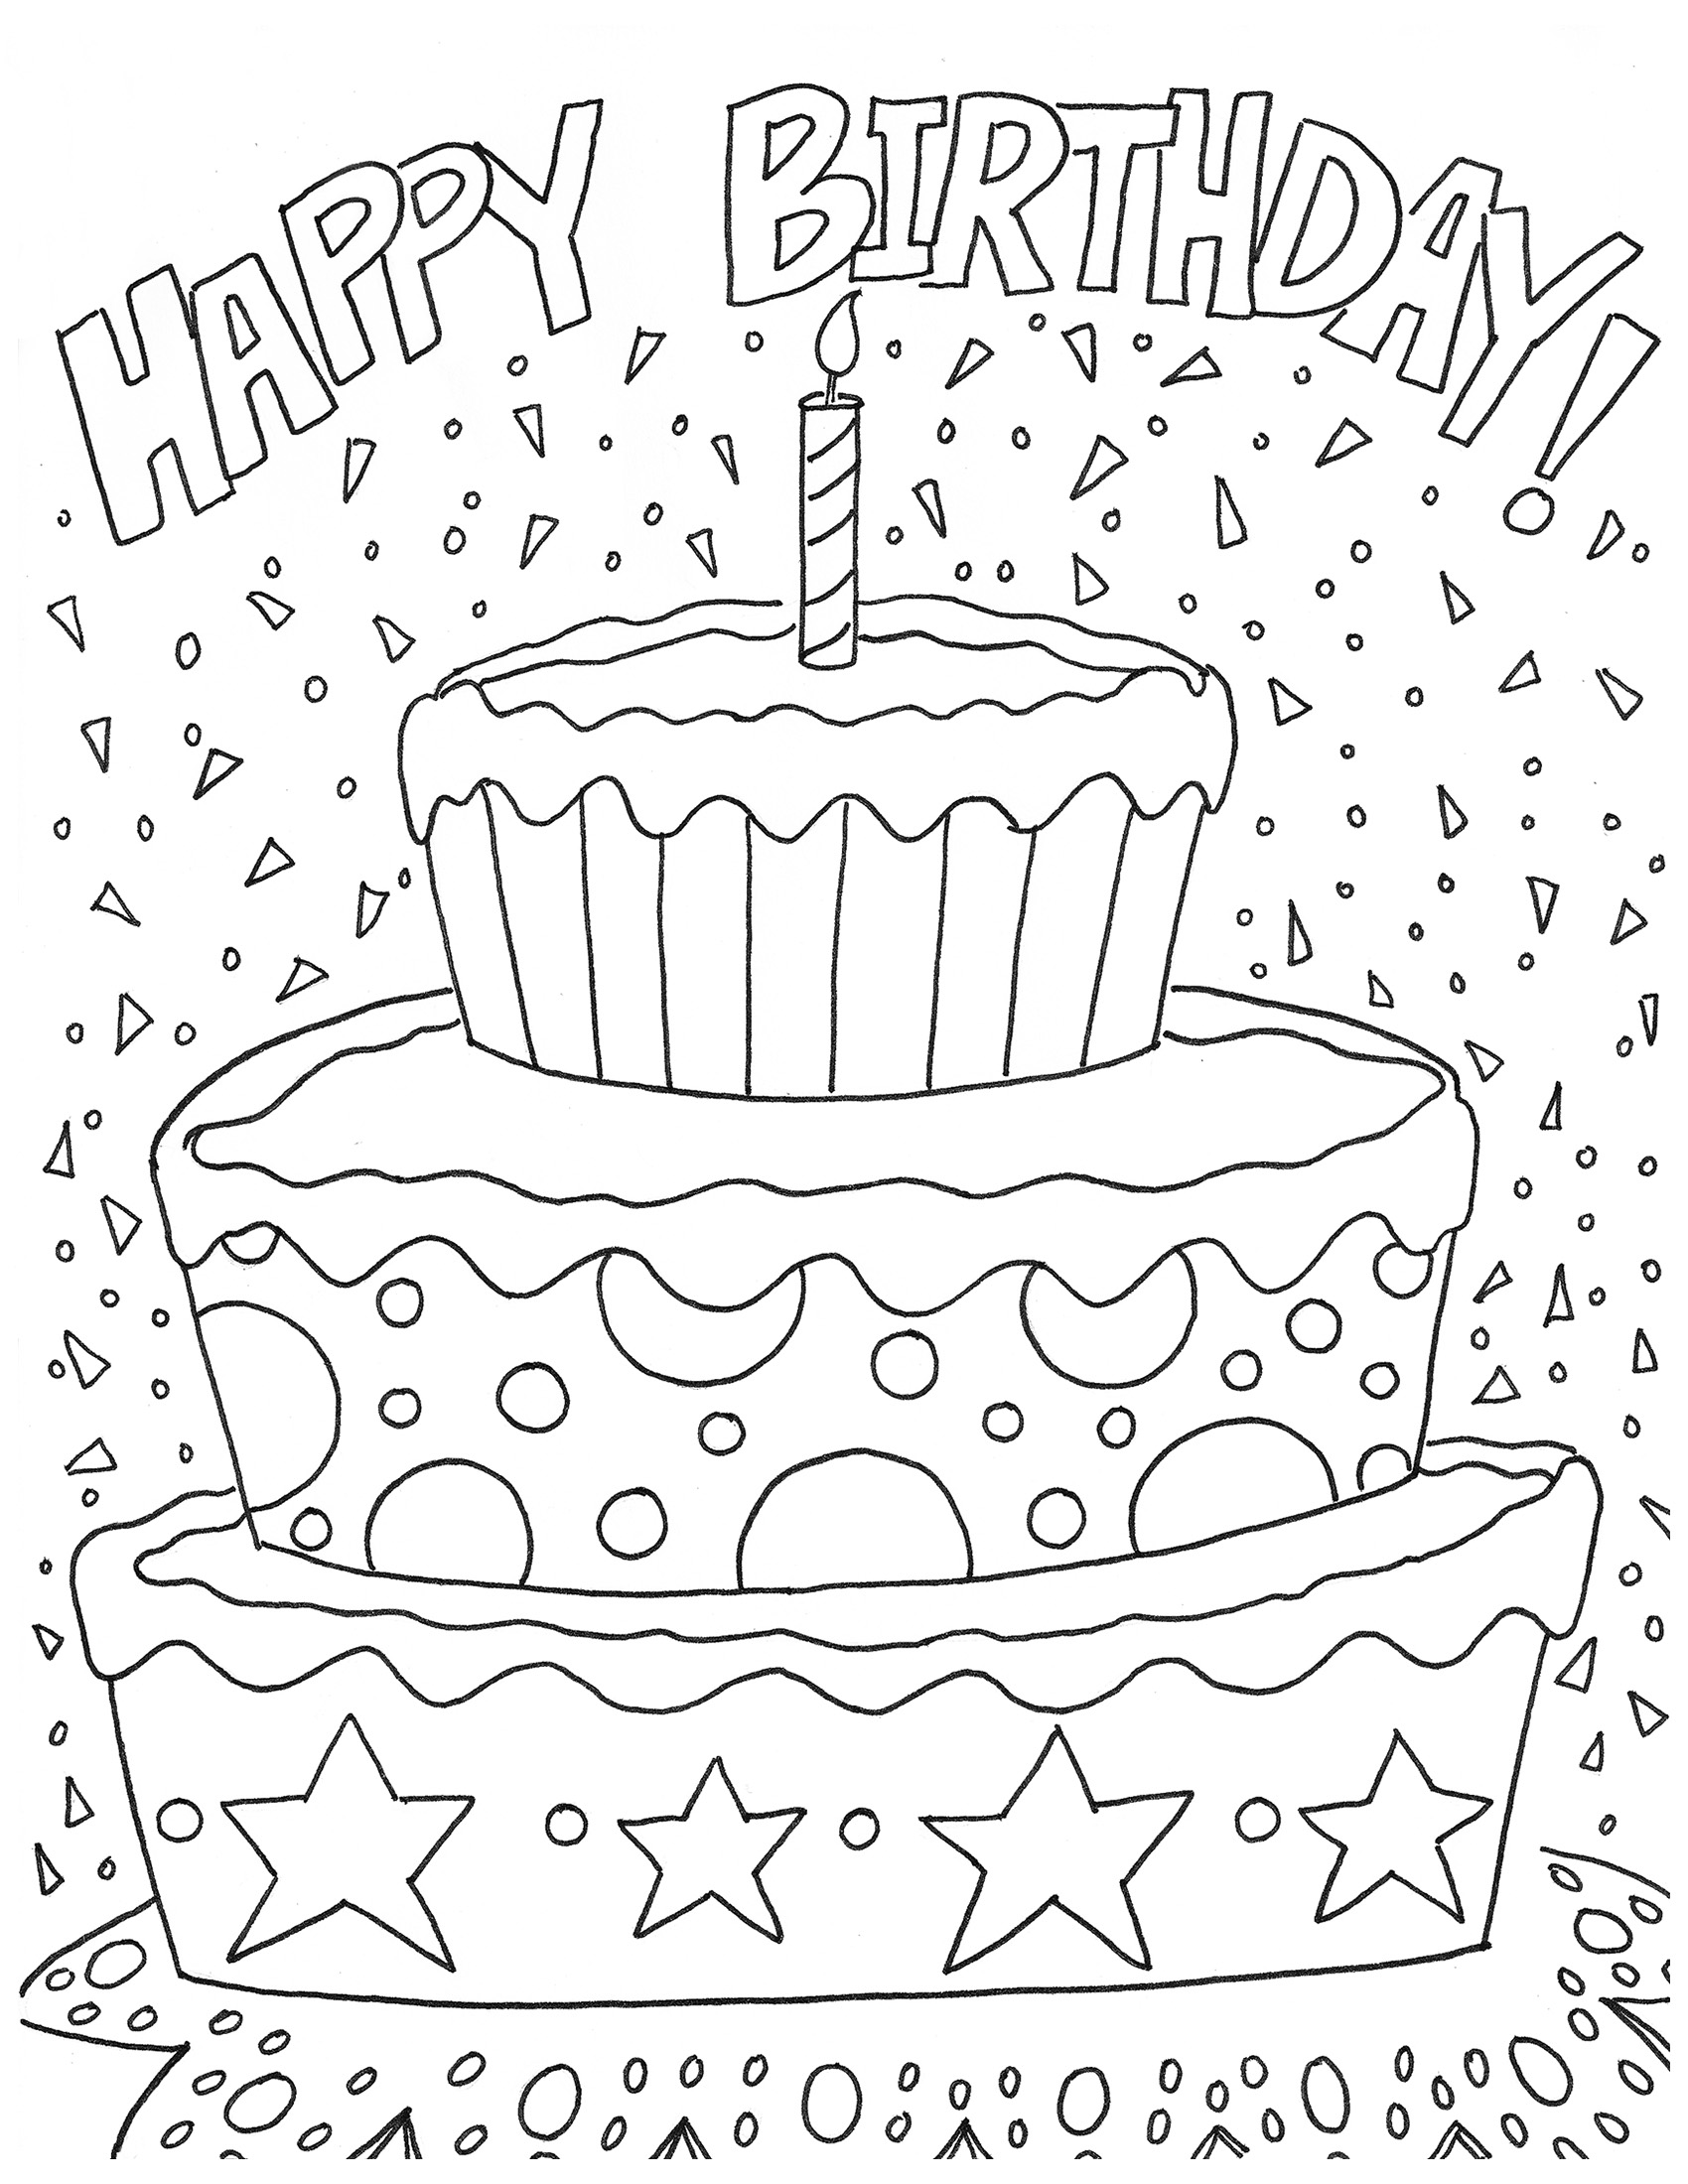 Free Happy Birthday Coloring Page and Hershey  artzycreationscom